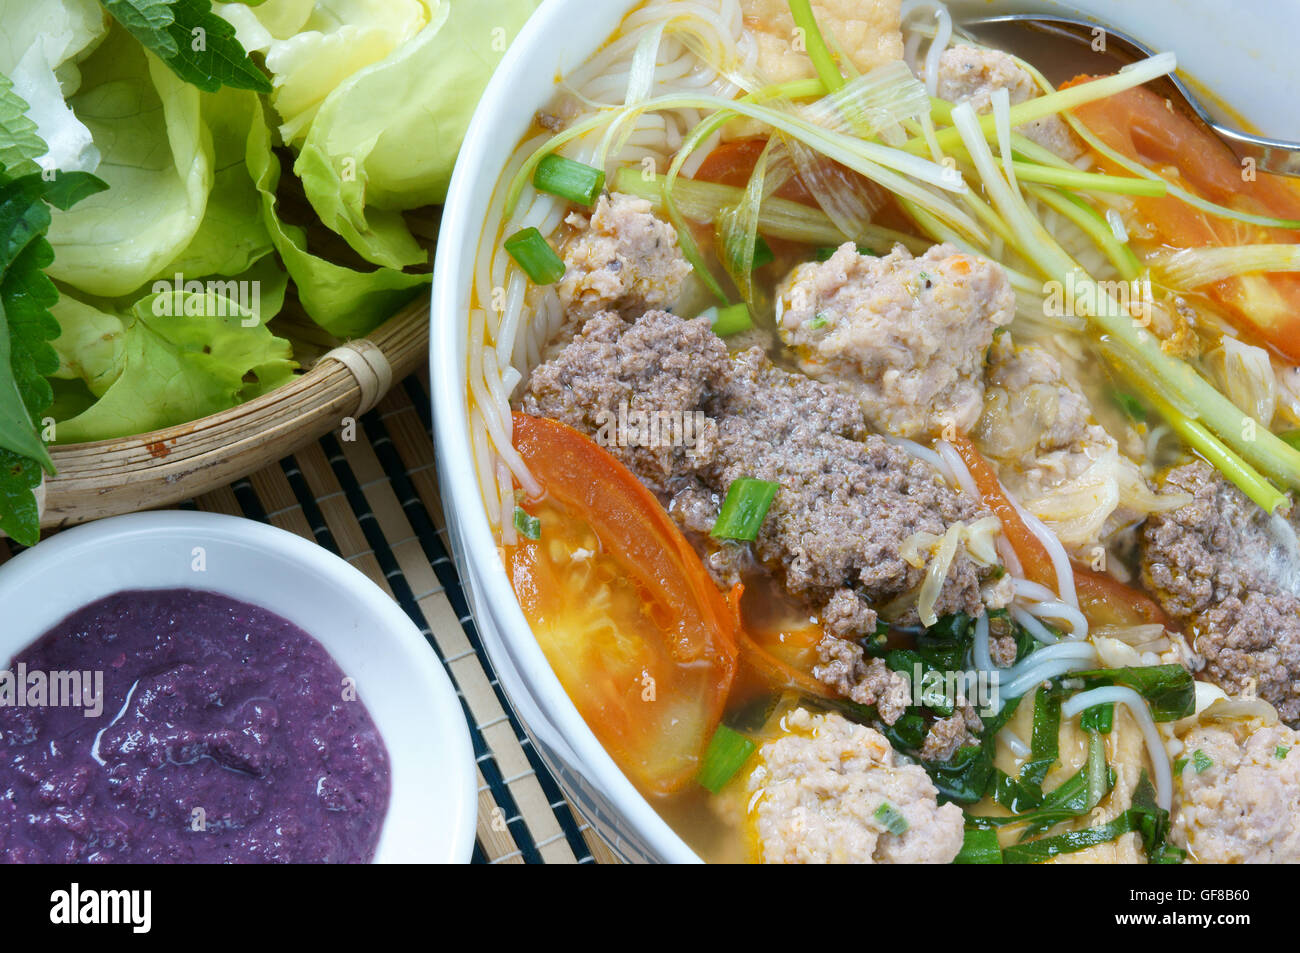 Stock Photo - Vietnamese food, bun rieu